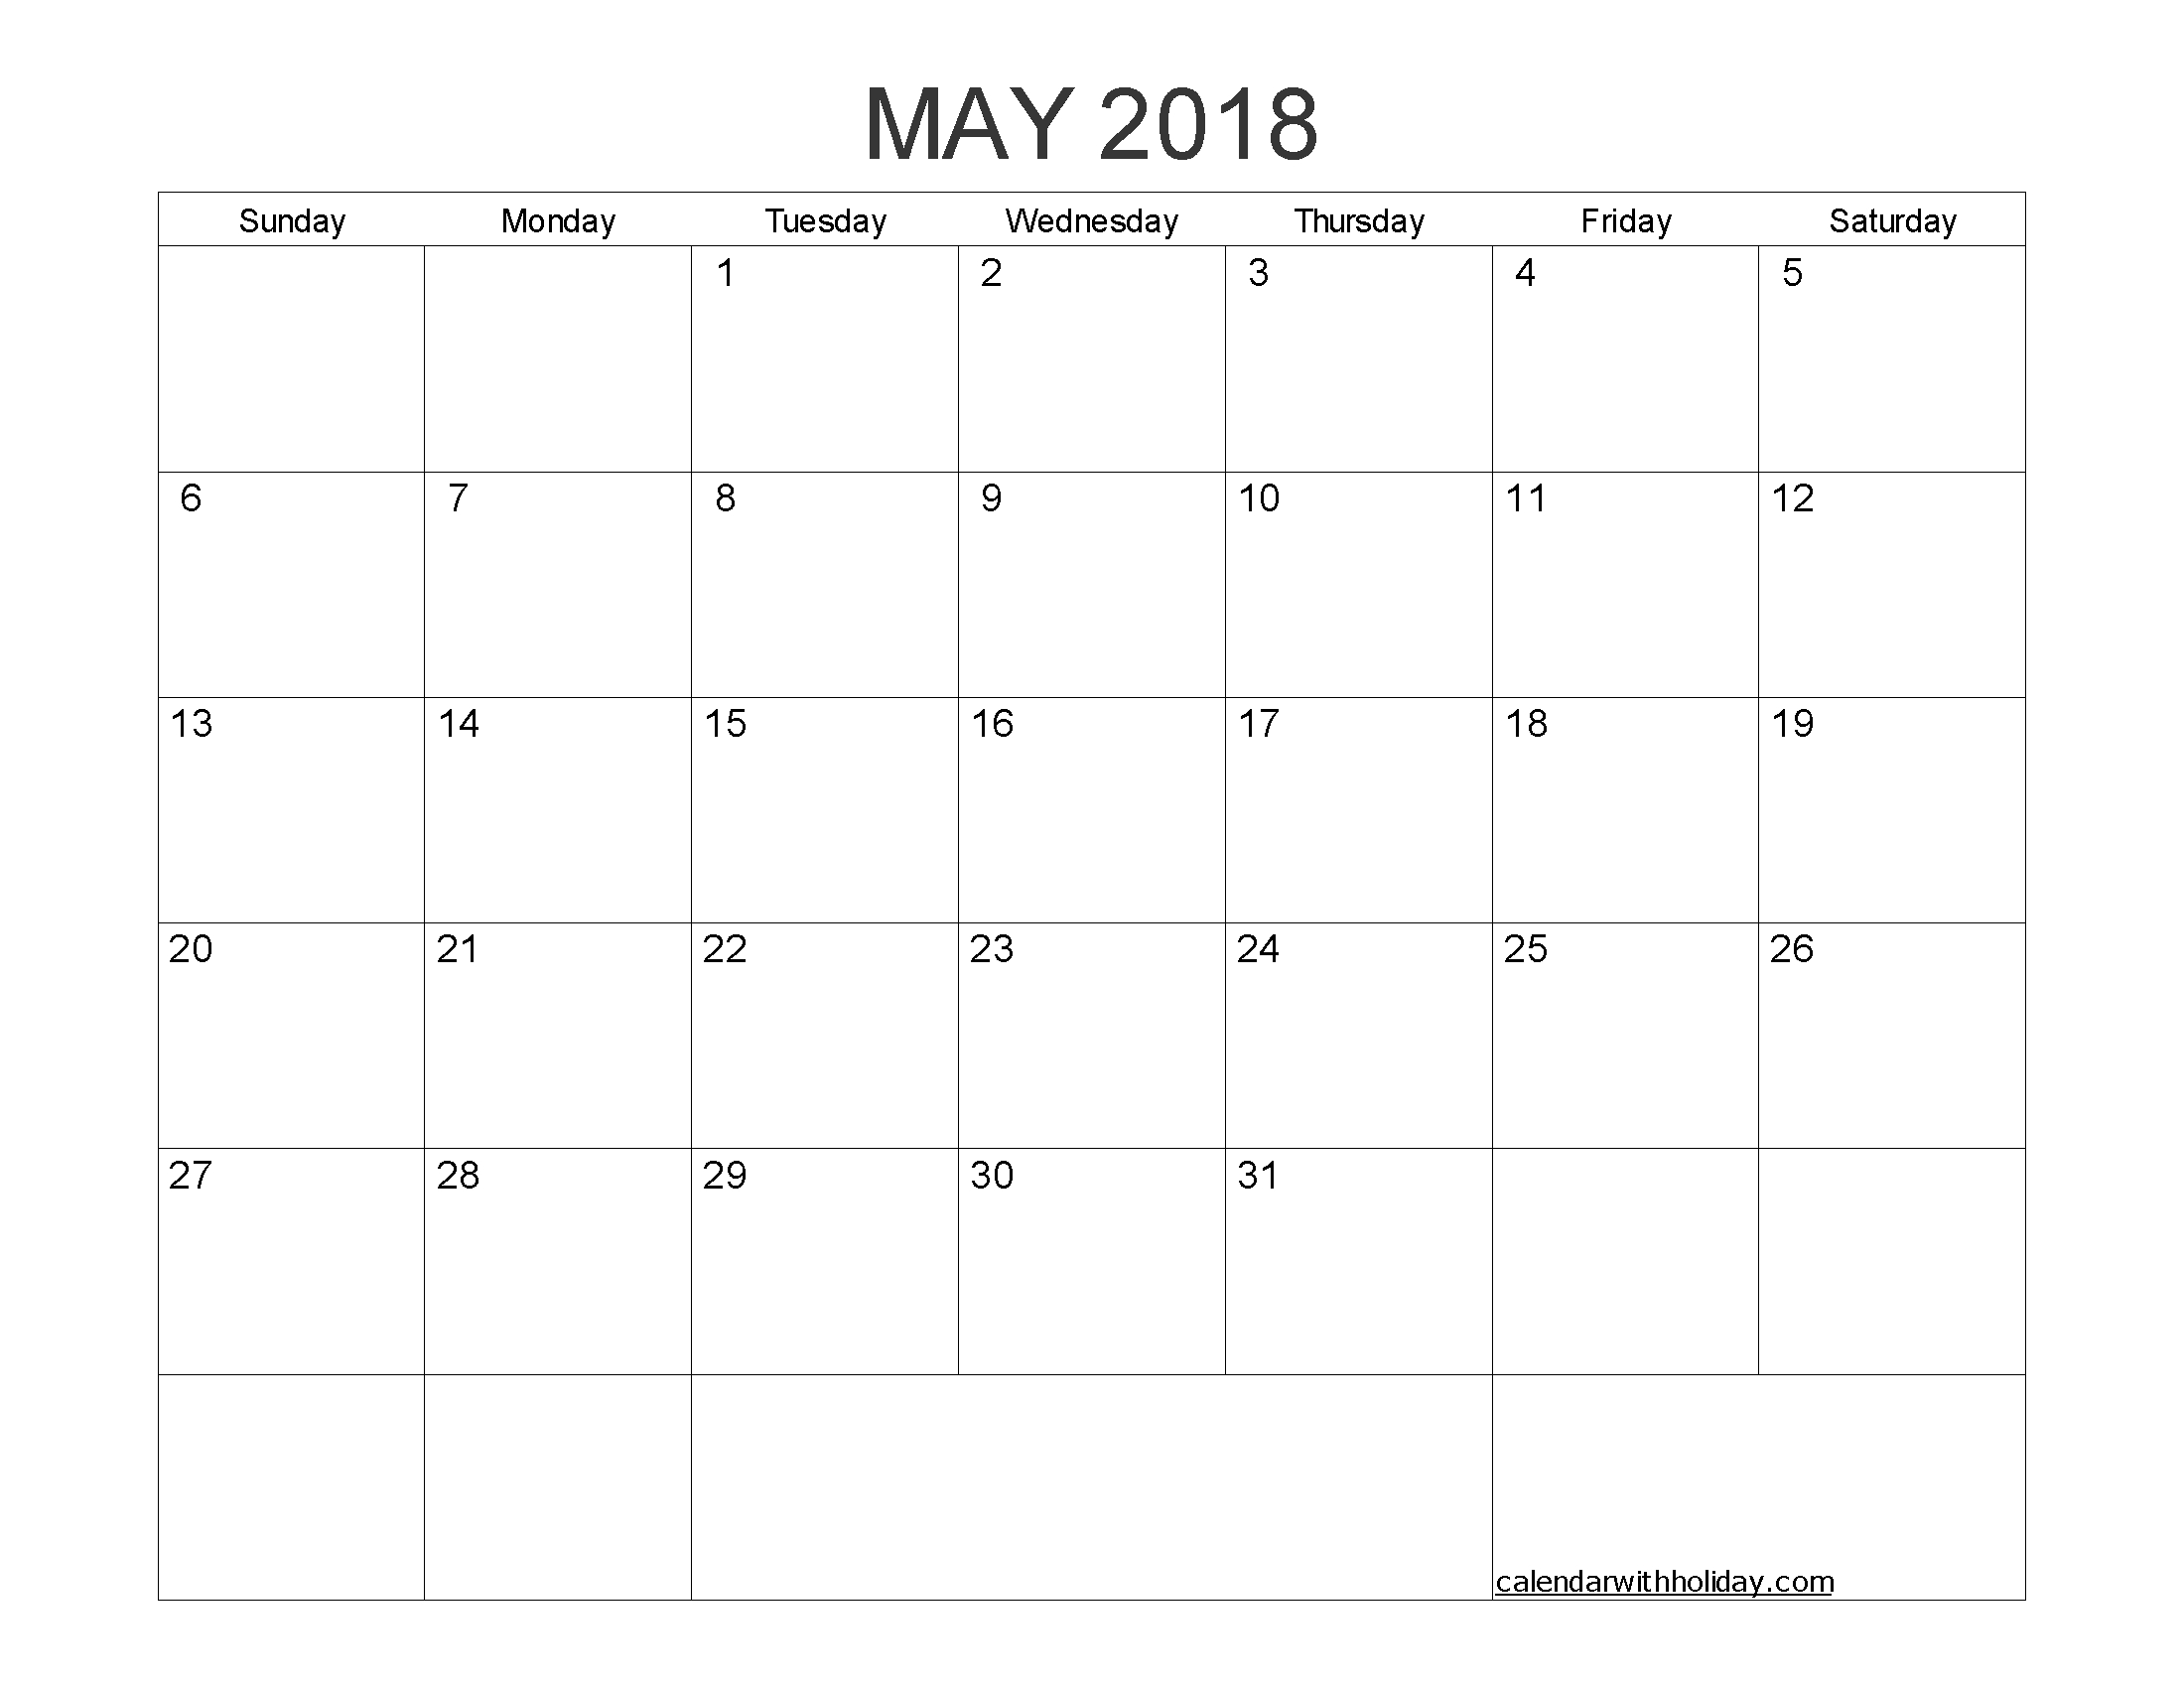 Blank Calendar May 2018 Printable 1 Month Calendar Template  </p>   </div>        <br>     <div class=